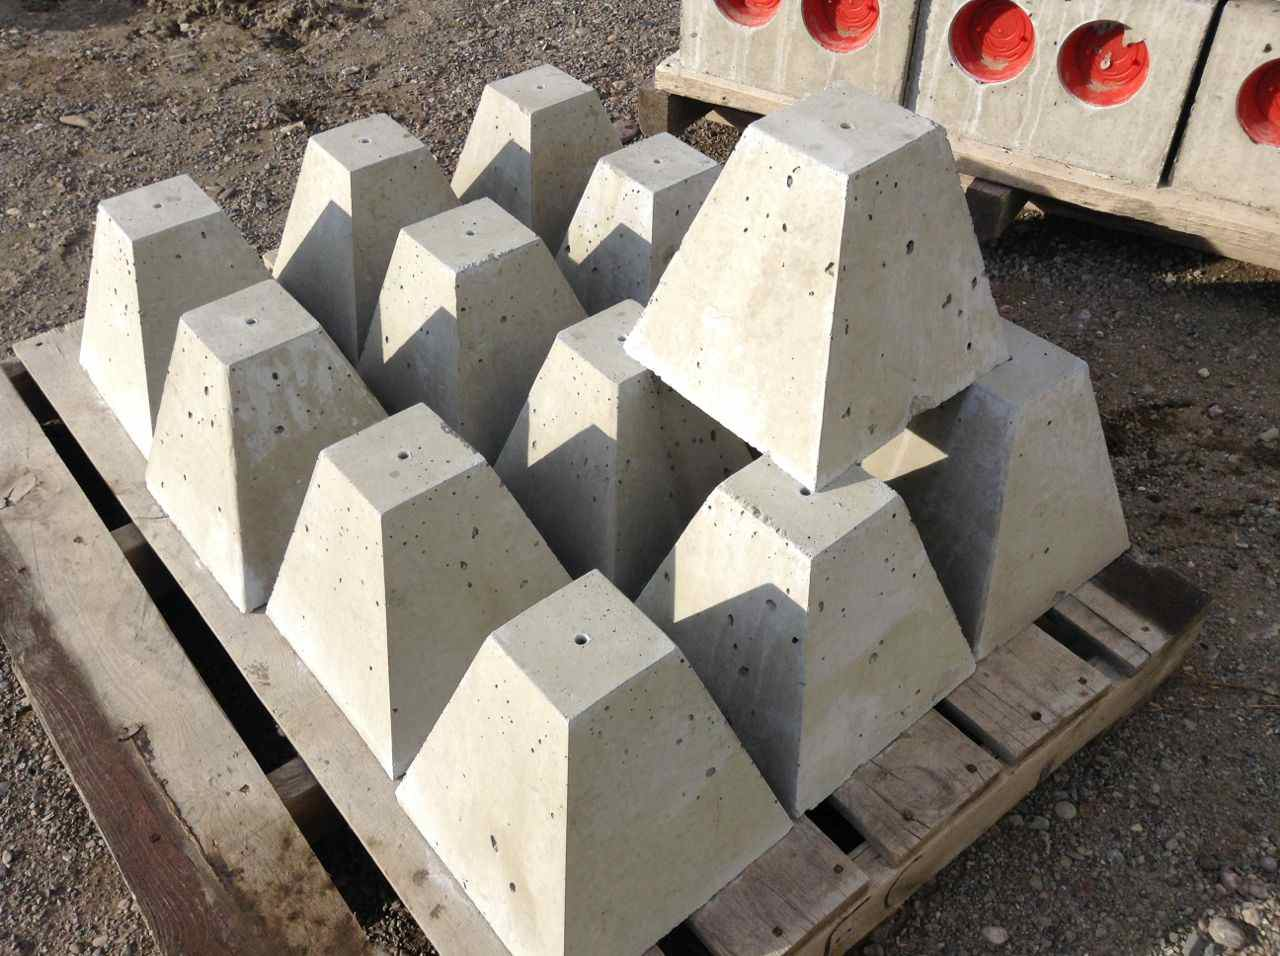 Precast Concrete Piers | Concrete Piers for Decks | Precast Concrete Footings for Posts